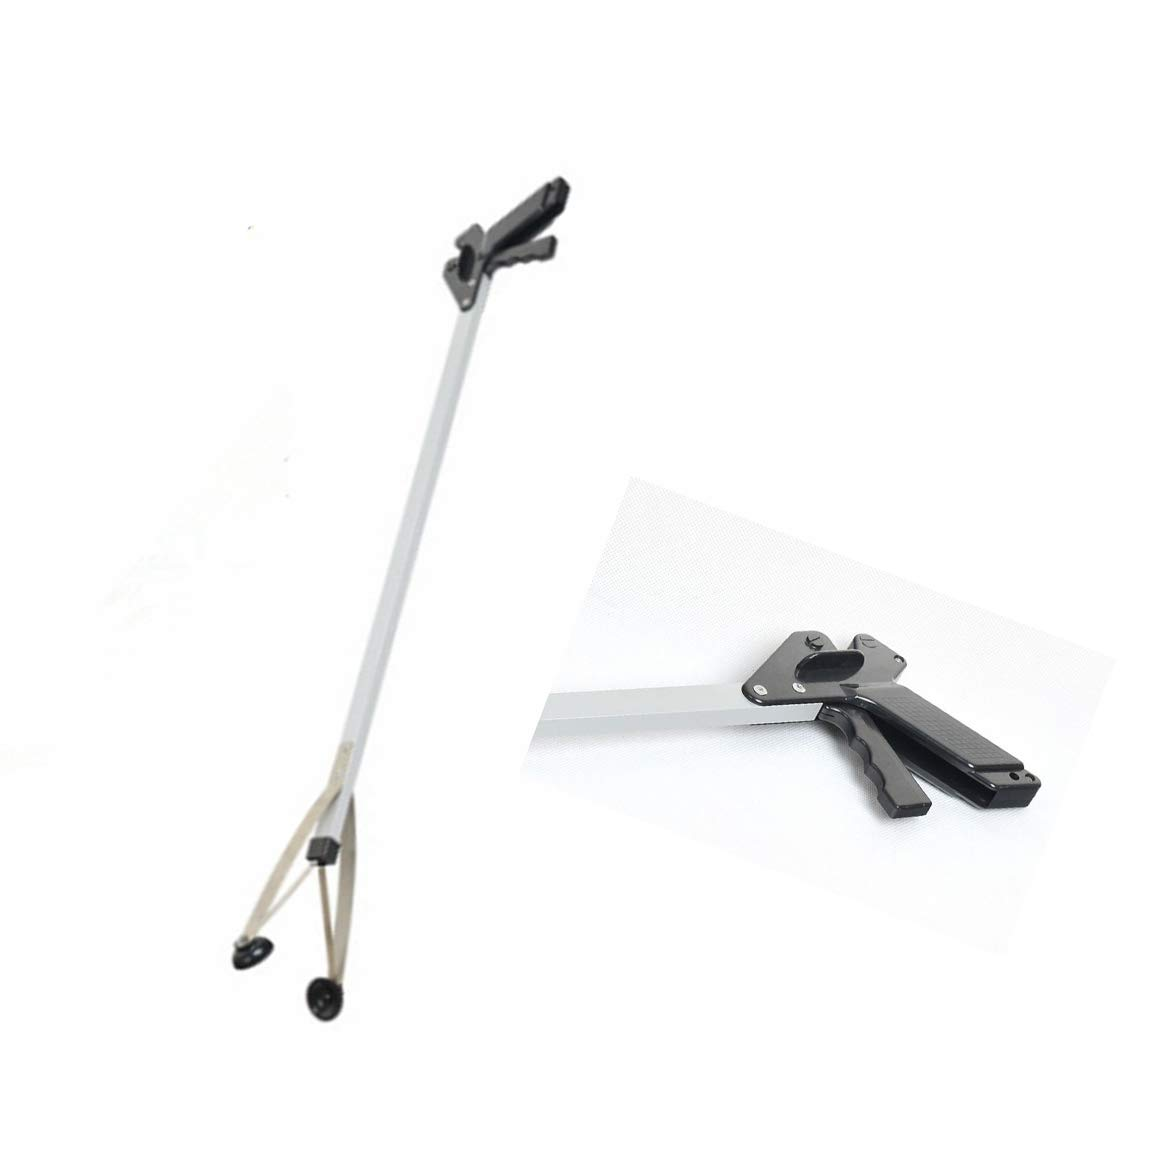 Xiaoai's shop Garbage Clip Picker, Stainless Steel Trash Cutter, Garbage Collector by Xiaoai's shop